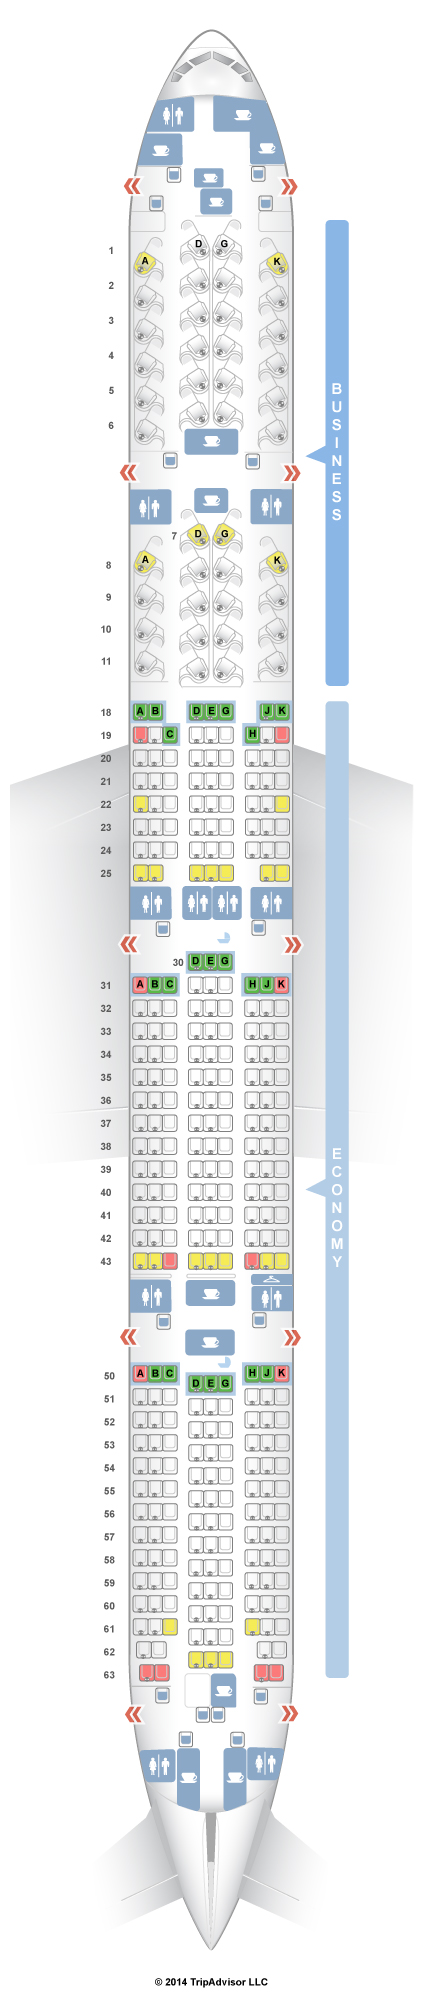 Air Canada Aircraft 777 Seating Plan - The Best Picture ... on air france 777 seat map, air india 777 seat map, korean air 777 seat map, air canada 777 seat map, china air 777 seat map,